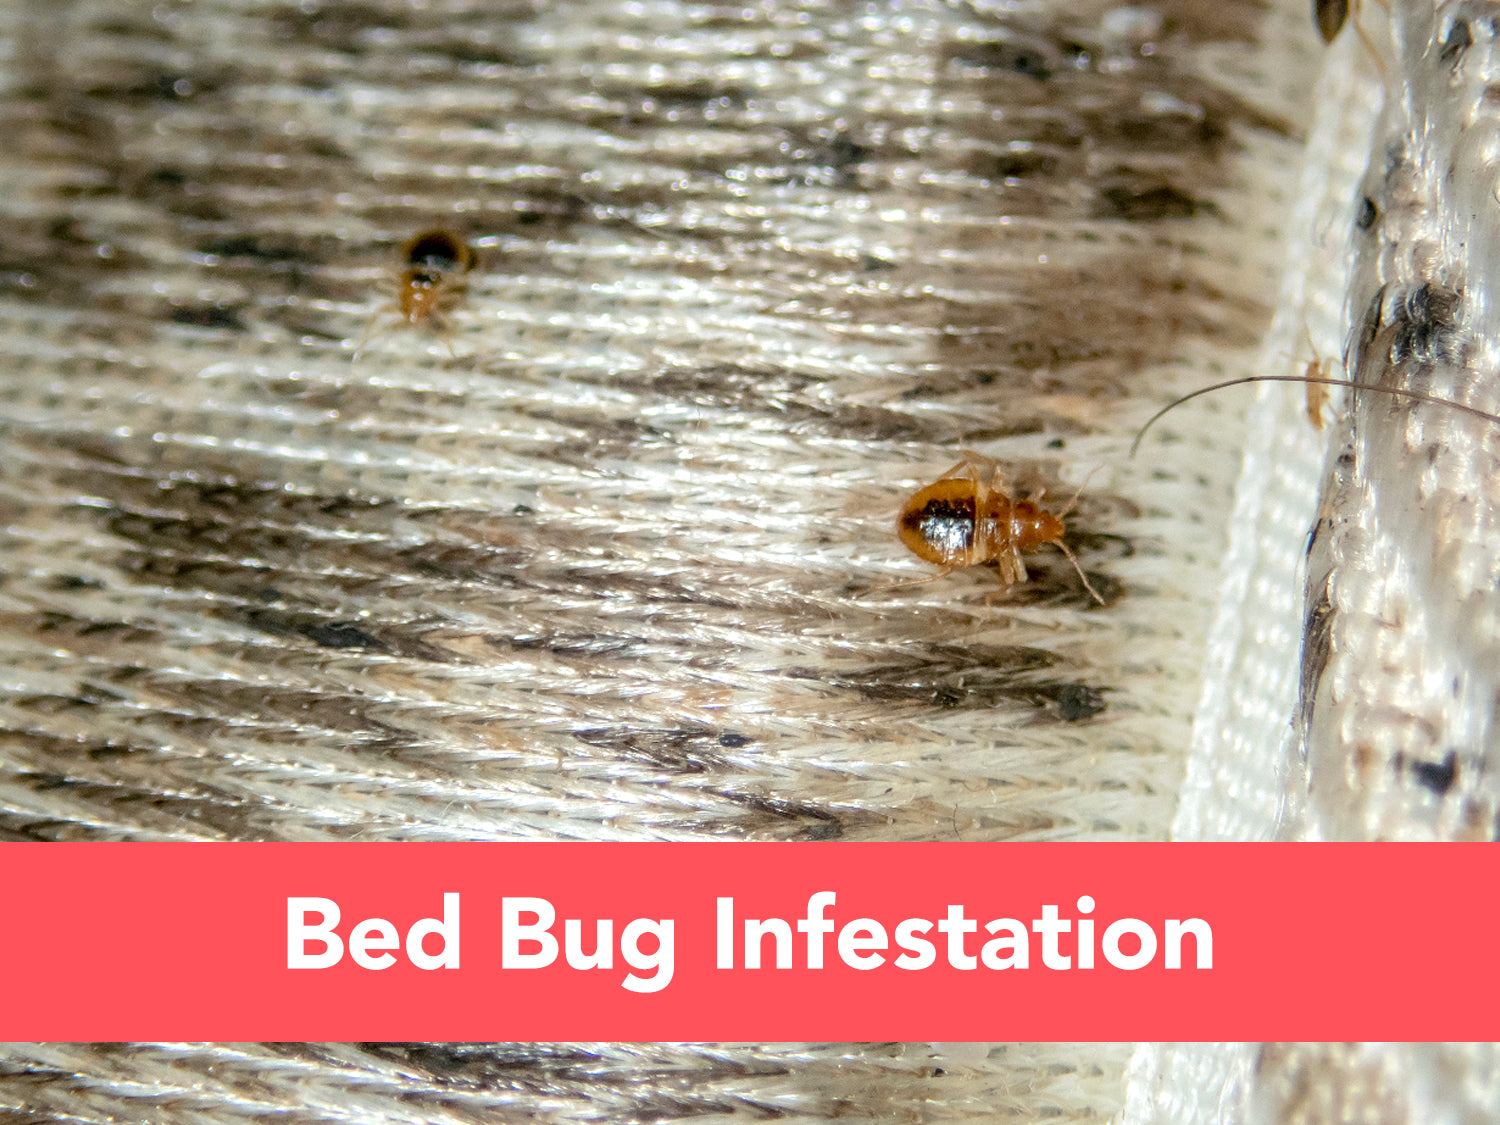 How to Check for a Bed Bug Infestation